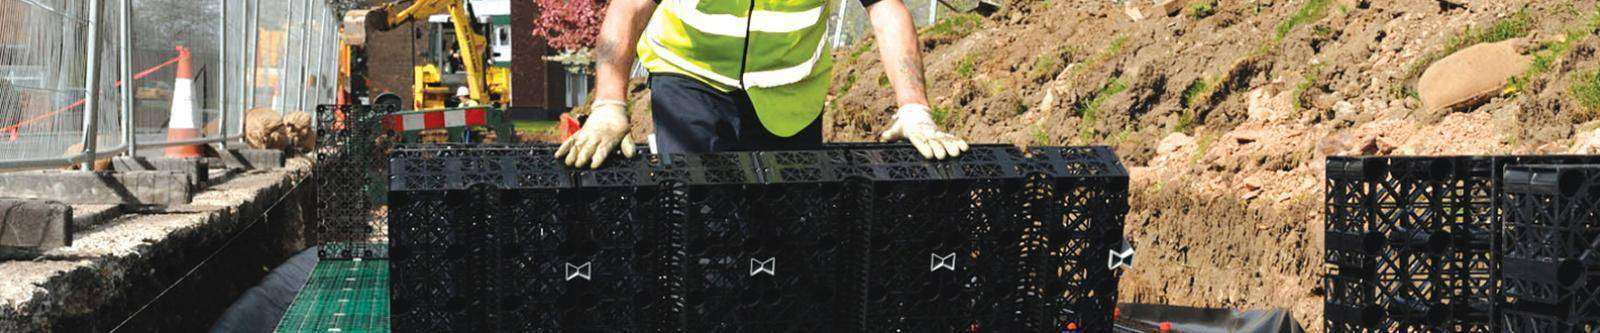 The Permavoid system is designed to be used in place of traditional aggregate sub-base